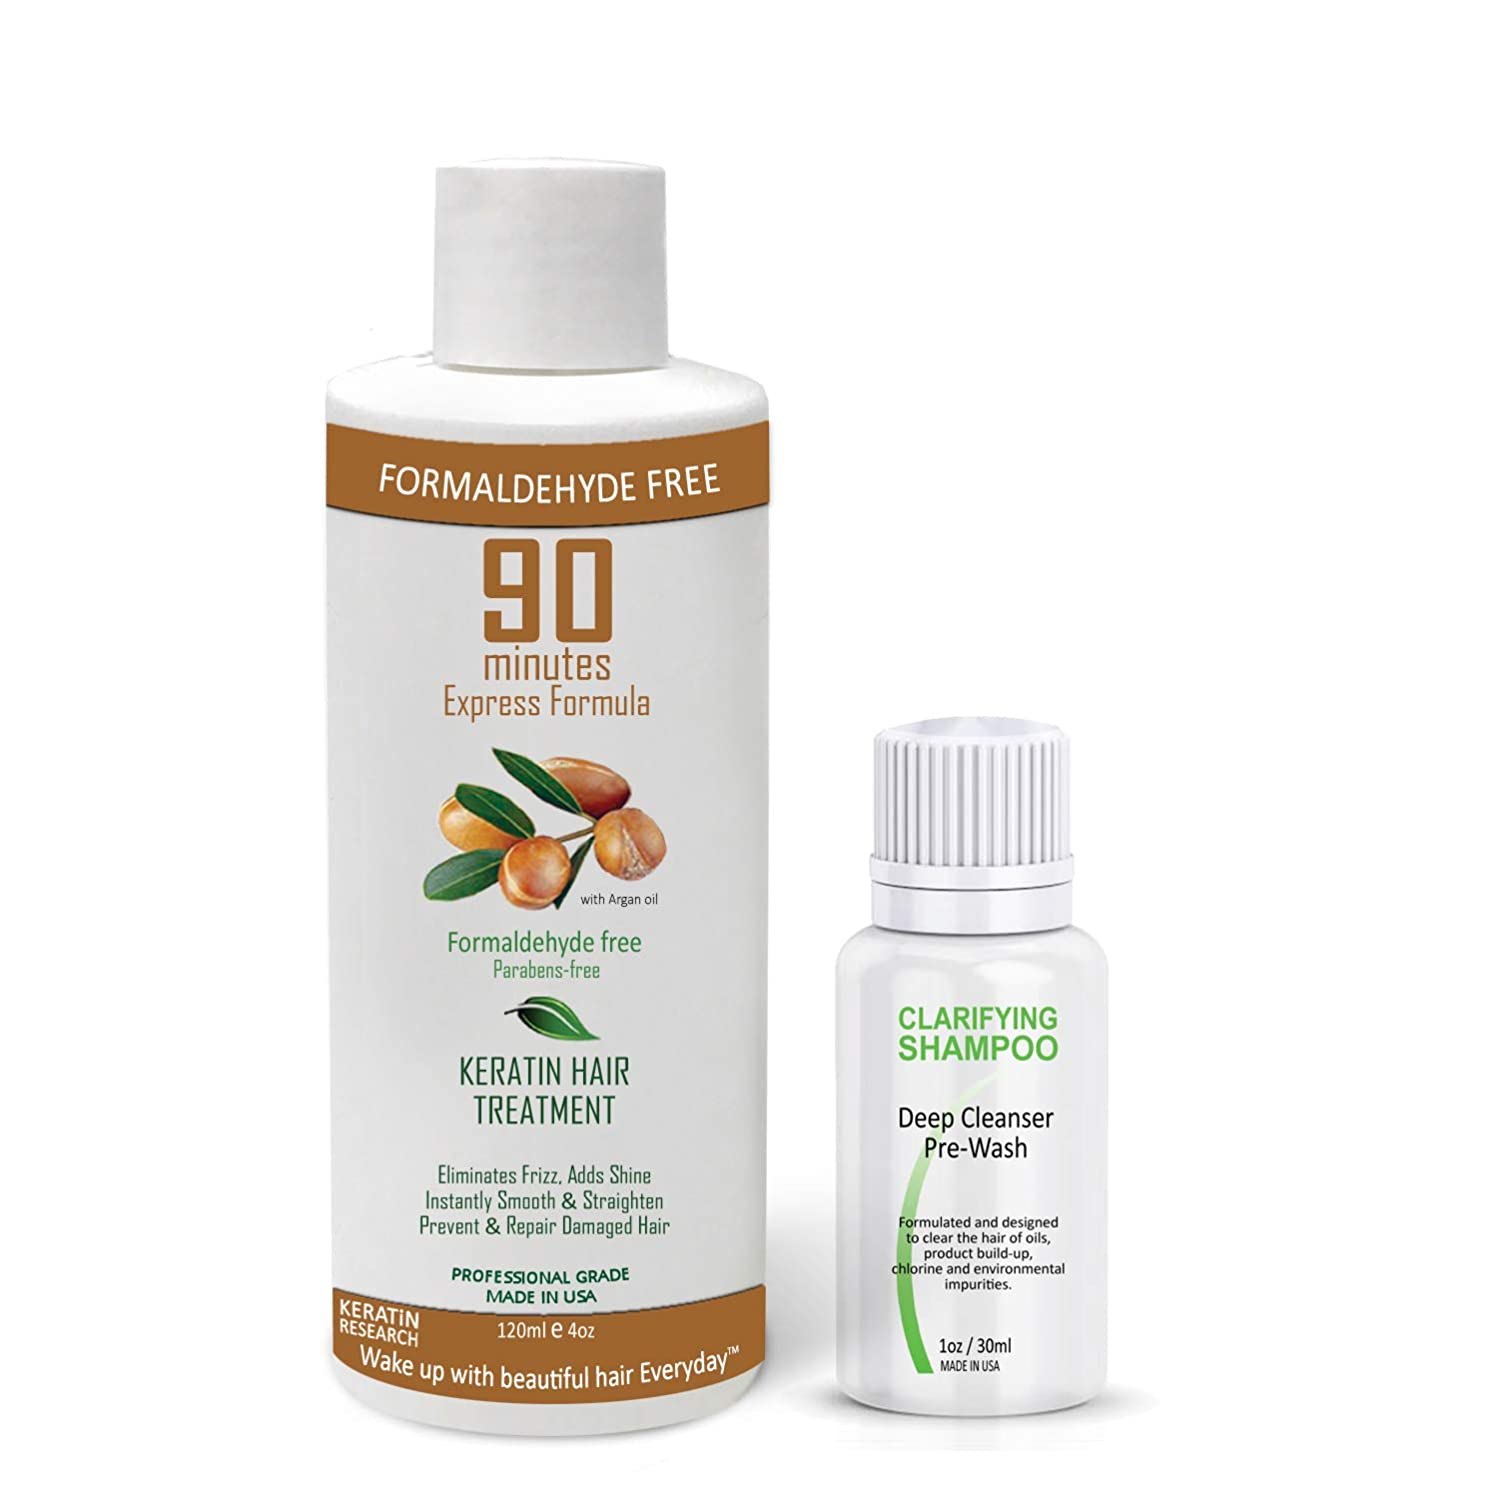 90 MINUTES Brazilian Keratin Hair Treatment Formaldehyde-Free Rich Complex of Protein Blends Coconut & Argan Oil Instant Results Super shiny Soft Straight Hair for months Keratin Research 120ml